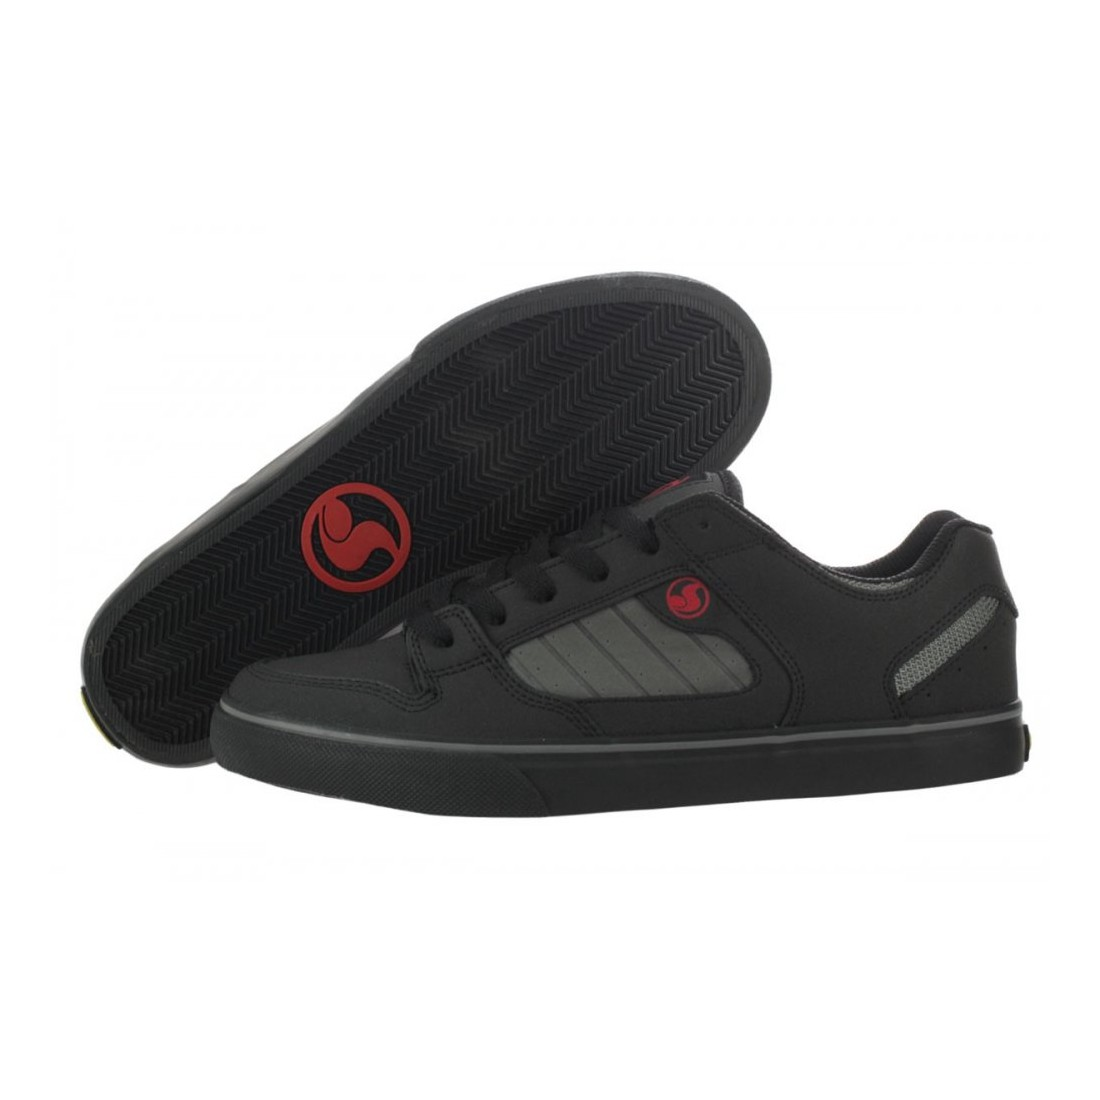 DVS MILITIA CT BLACK FMF